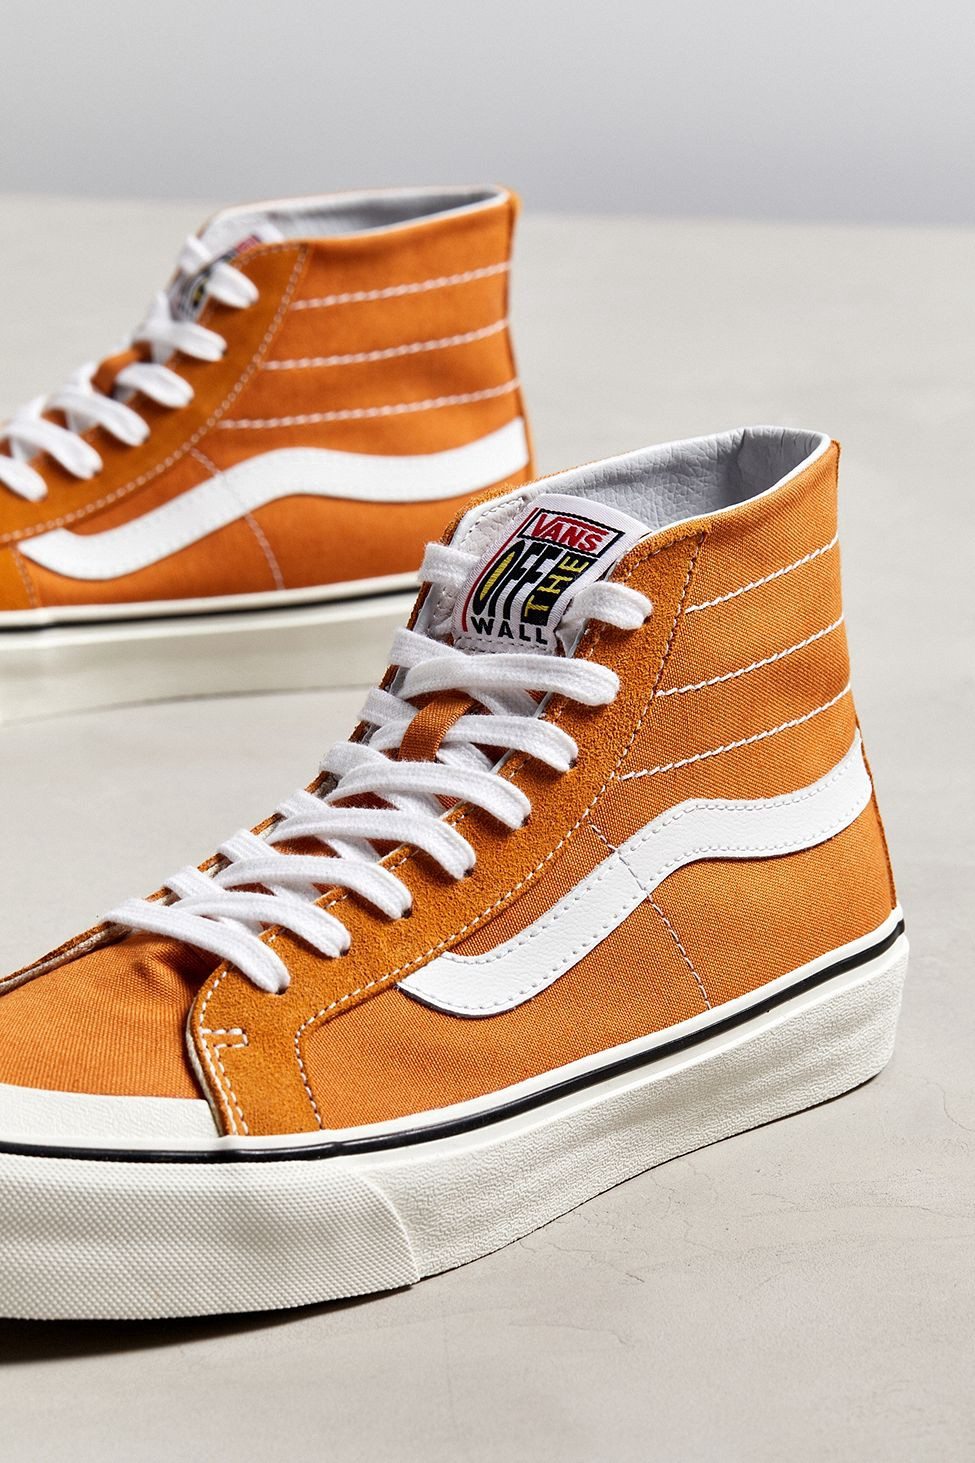 Urban Outfitters Vans Sk8-Hi 138 Decon Sf Sneaker - M 11 W 12.5 One Size 018263669